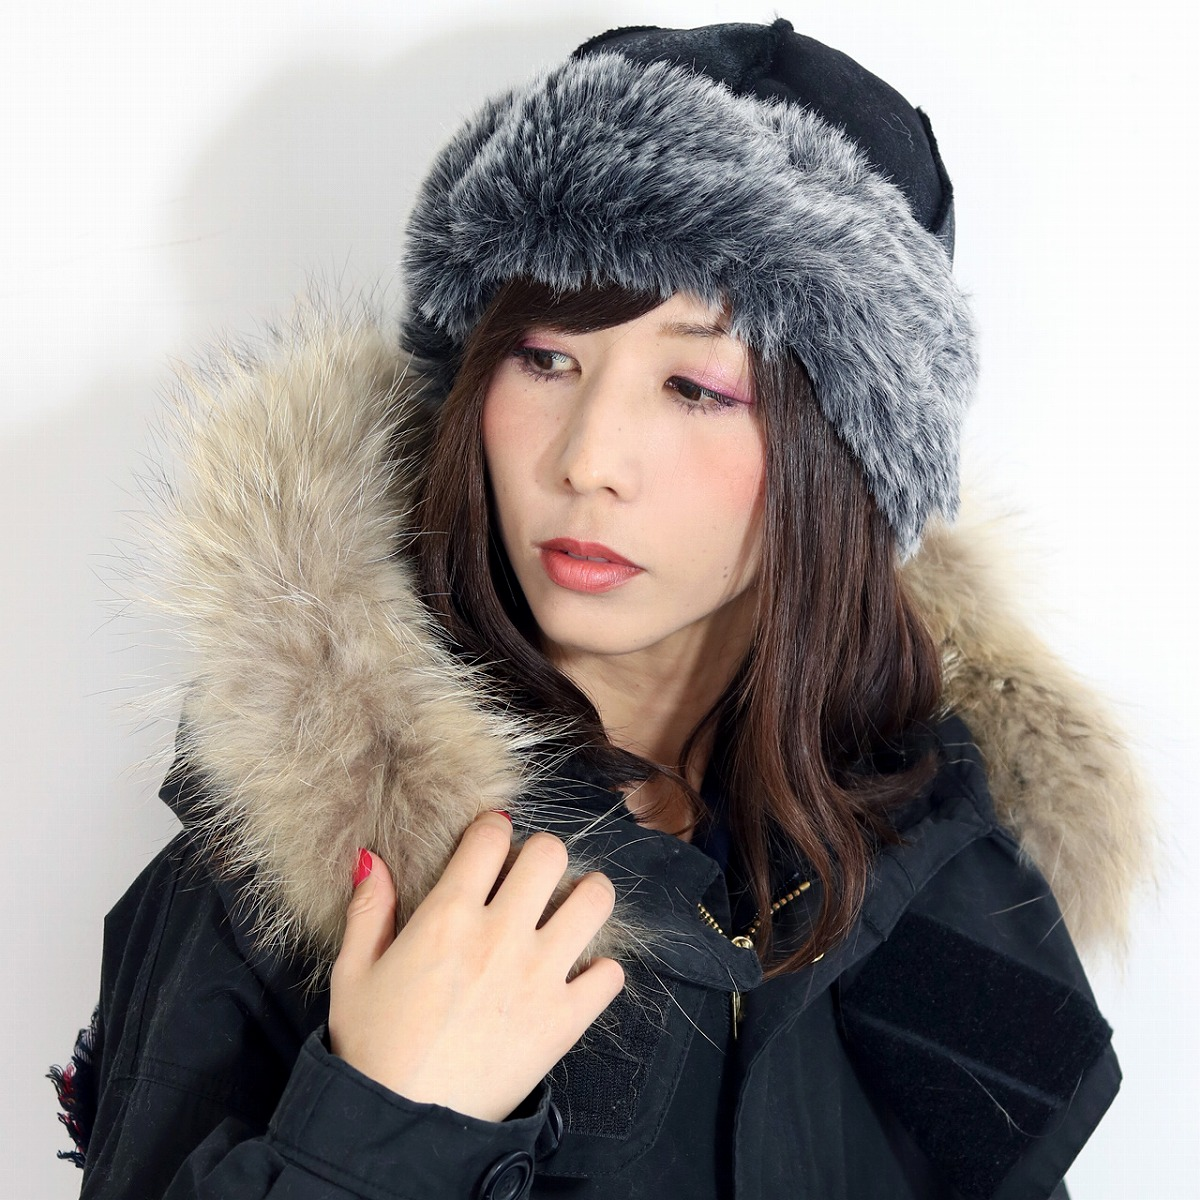 138fbe0bb ROBERTidea Russia hat hat fur Roberto idea Russian hat Lady's hat black  black (Christmas gift packing lapping free of charge) in the fall and winter